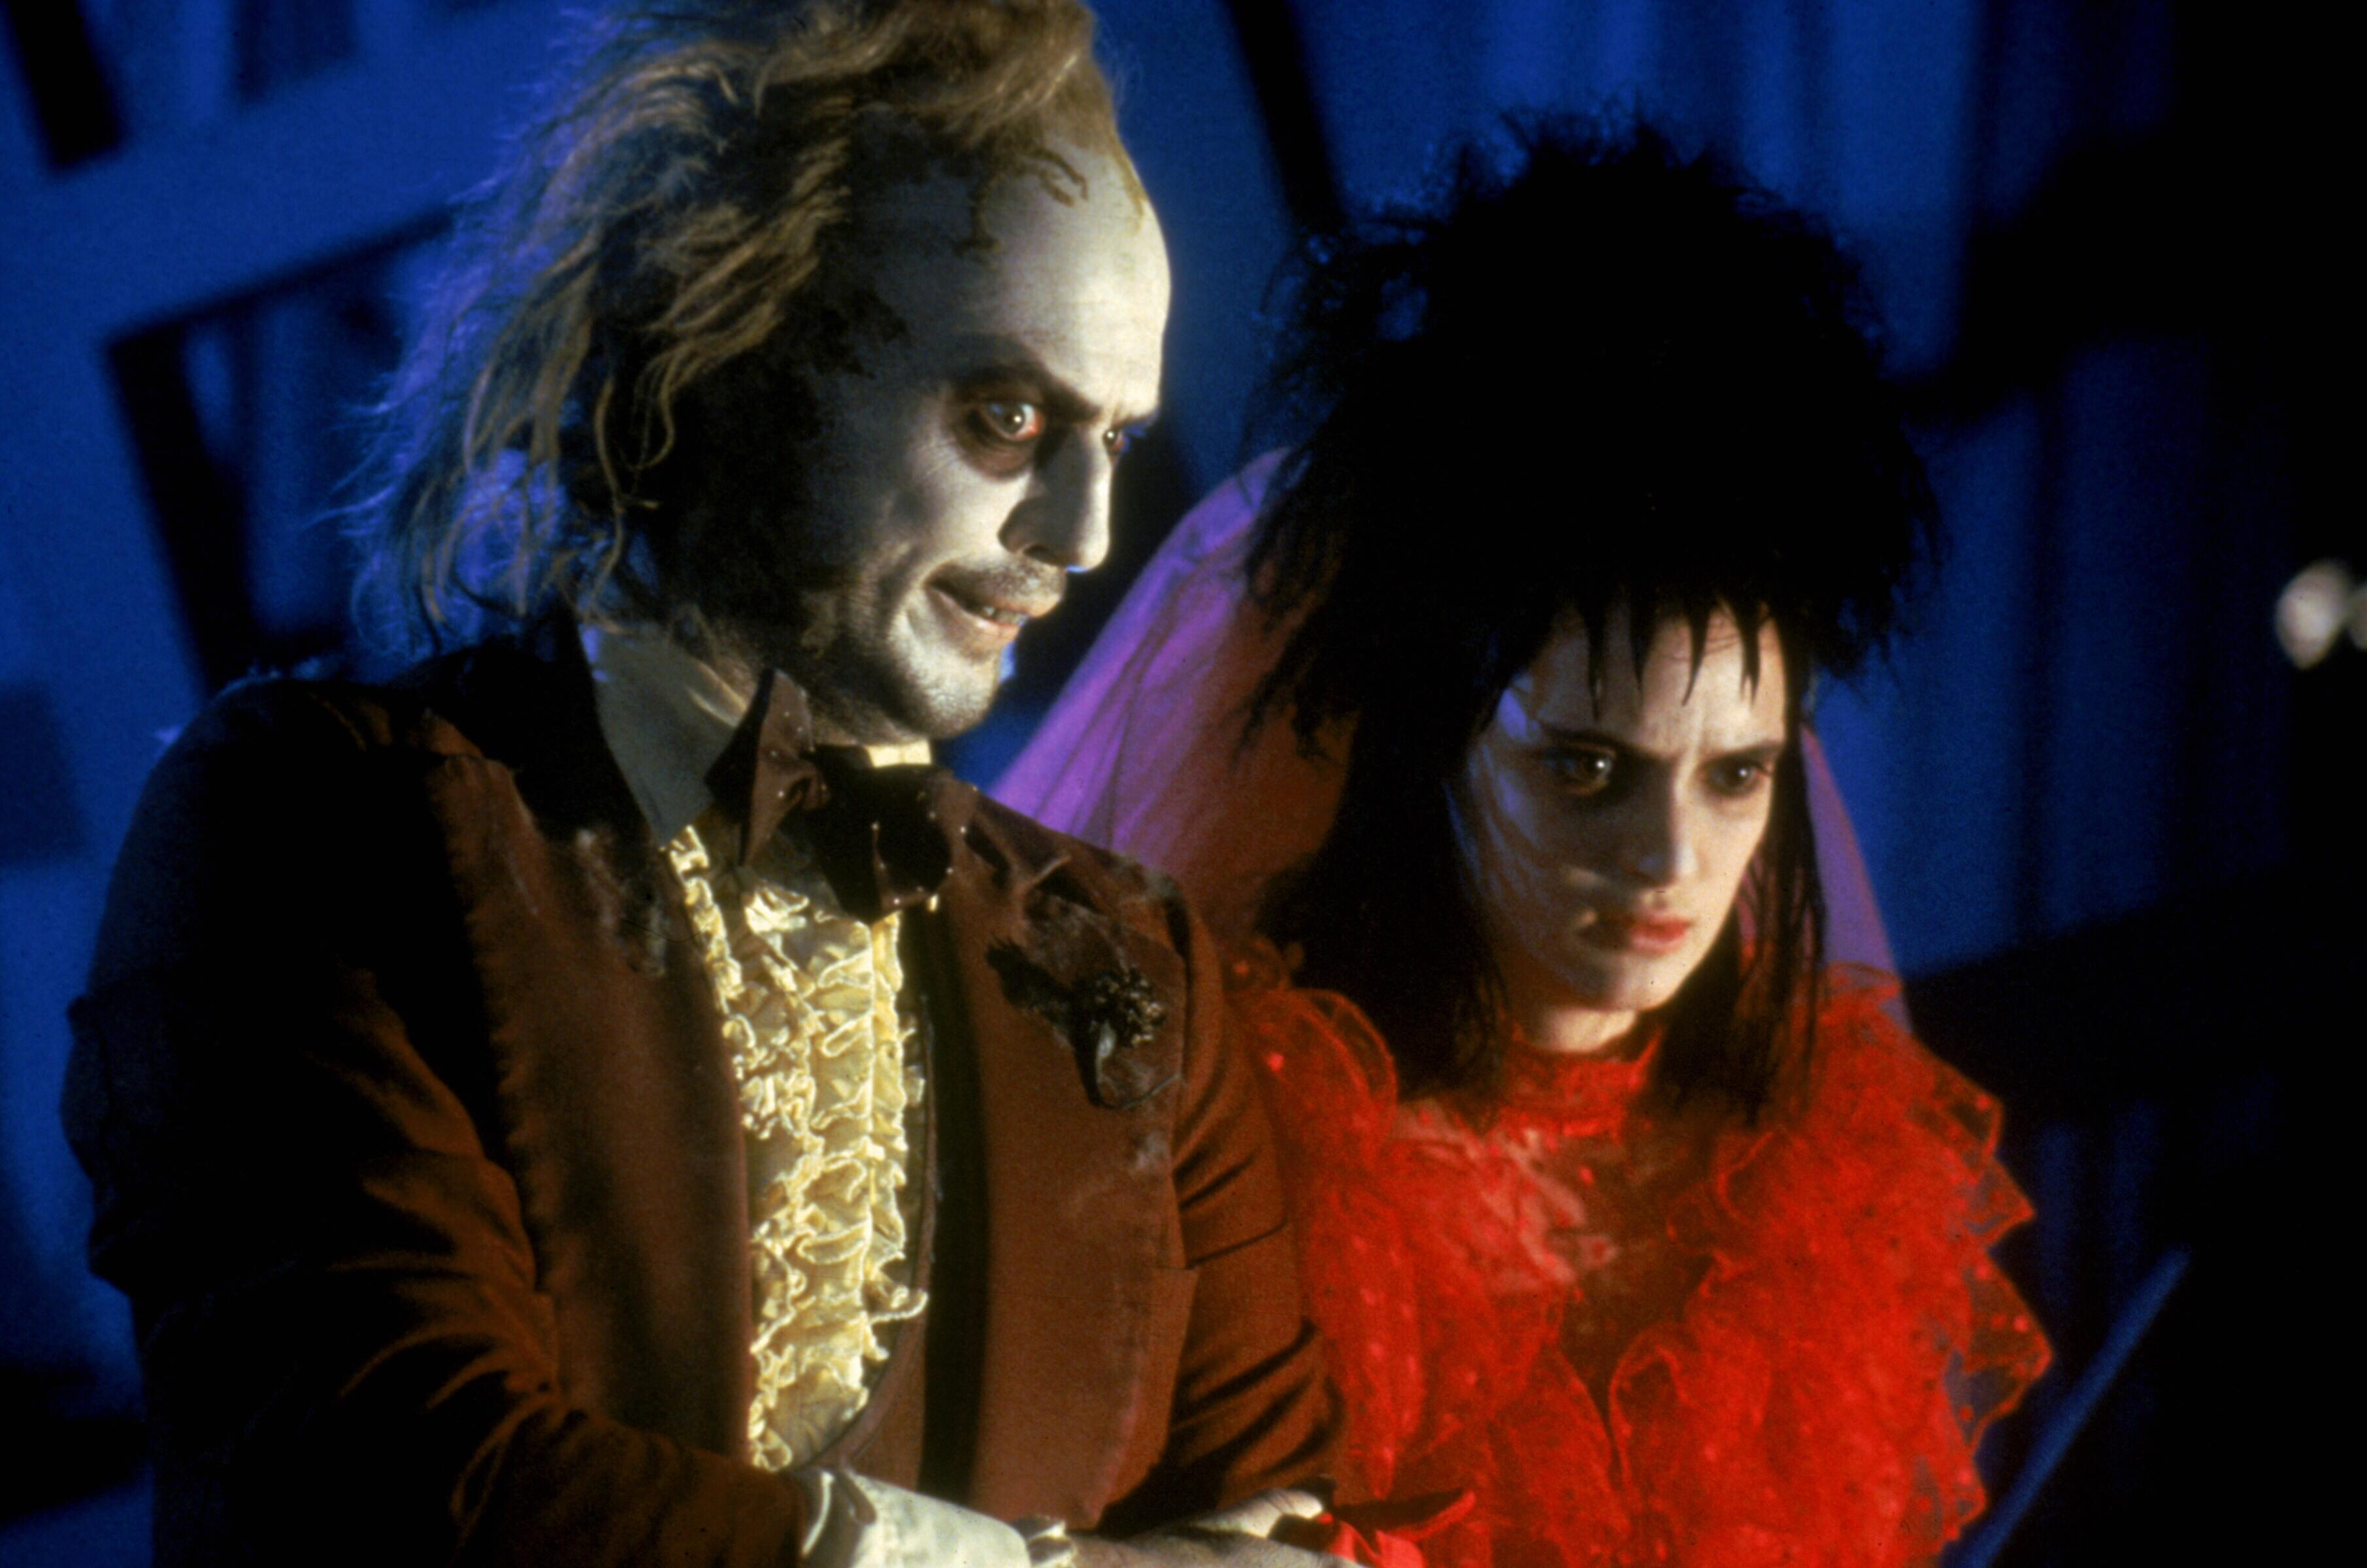 Michael Keaton and Winona Ryder in Beetlejuice in 1988.